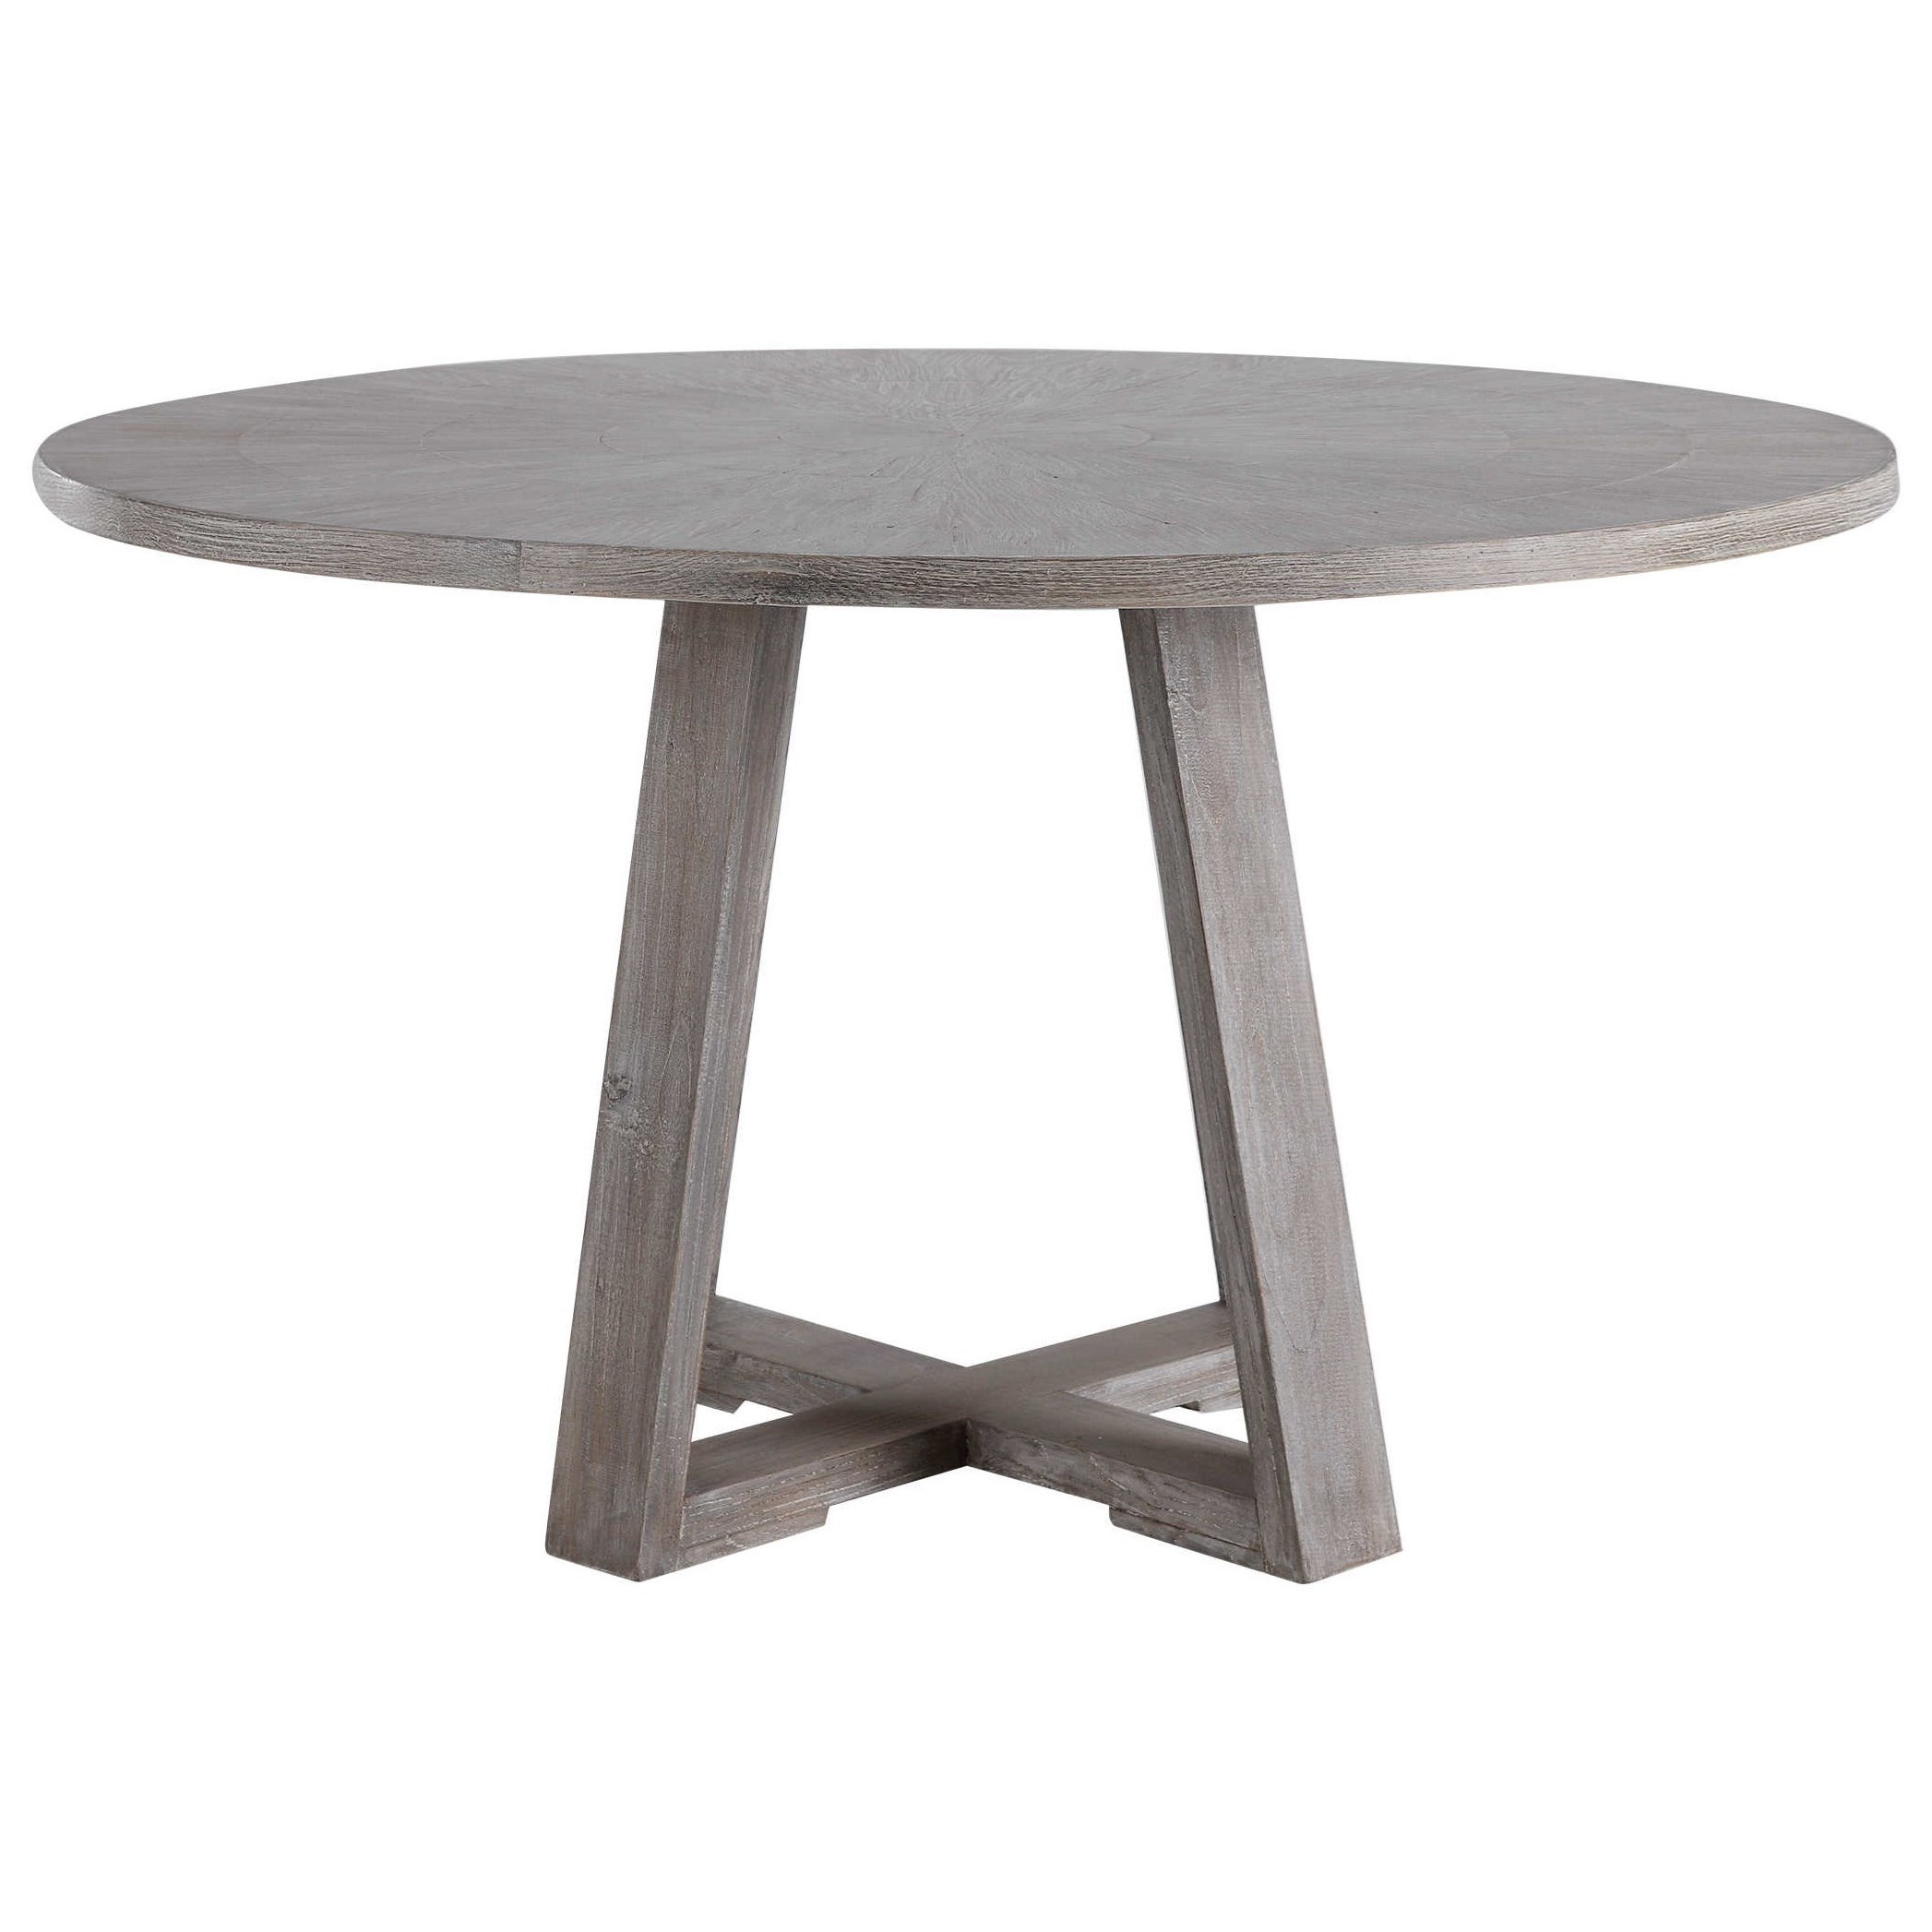 Accent Furniture Gidran Gray Dining Table by Uttermost at Upper Room Home Furnishings